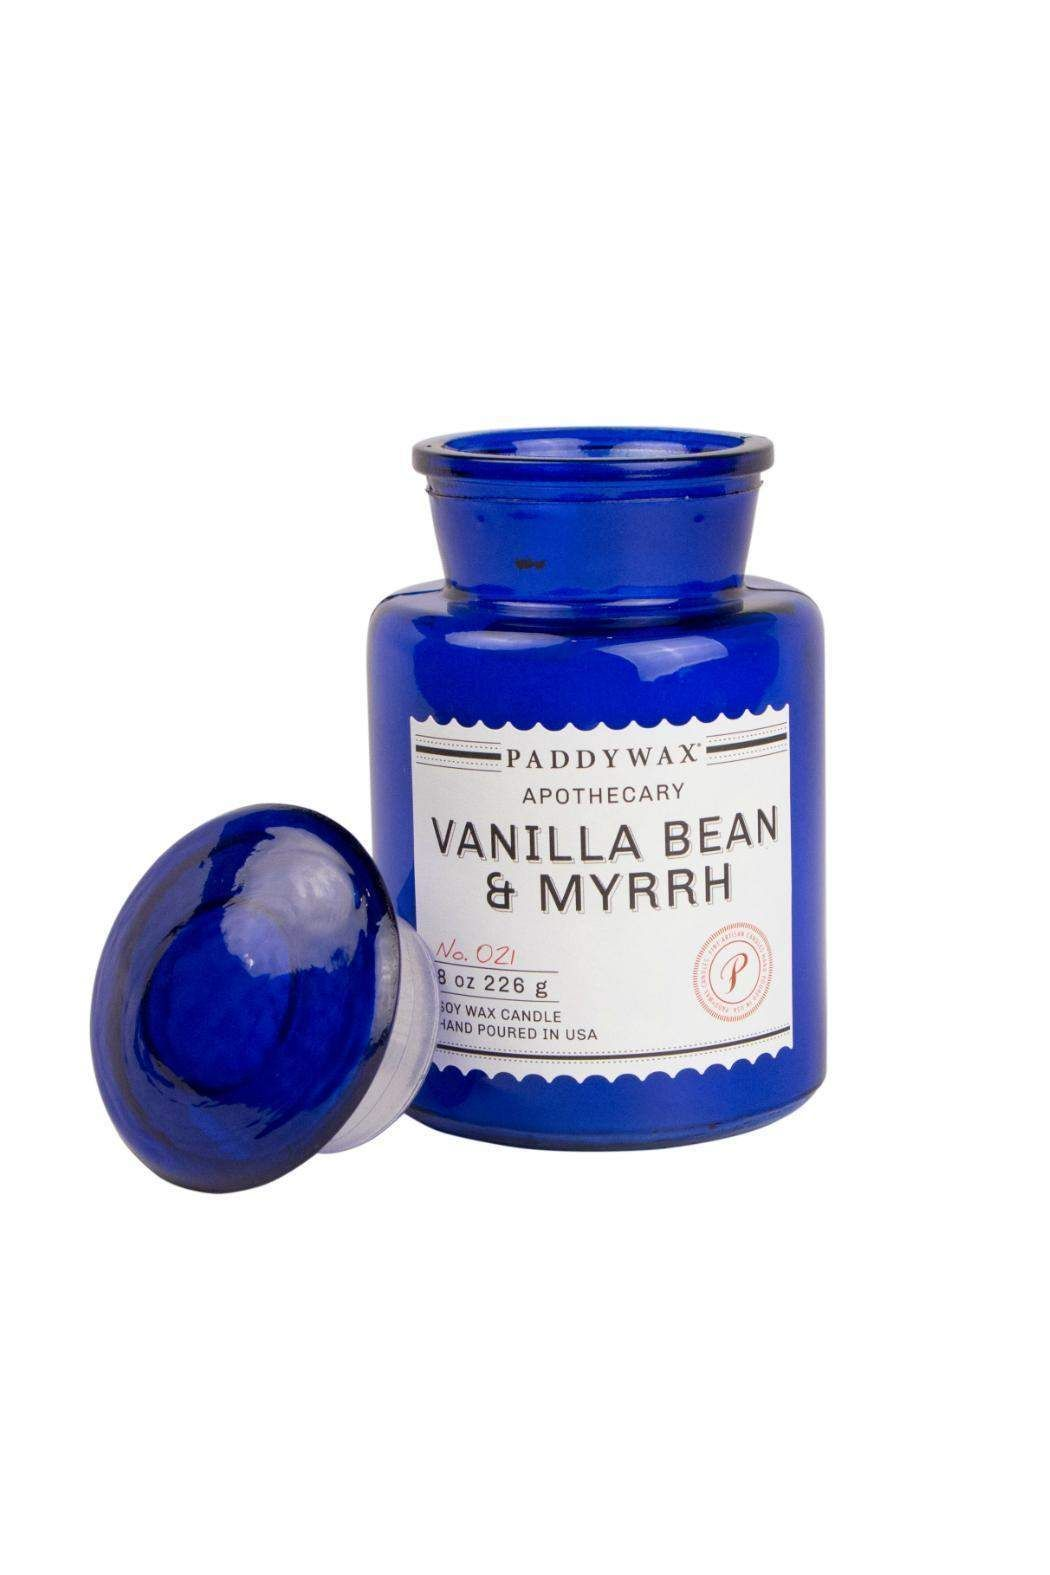 Our signature Soy Wax, paired with the perfect remedy of Vanilla Bean & Myrrh fragrance notes, hand-poured in a 8 oz. vintage-inspired Blue Apothecary glass bottle.    Blue Vanilla Candle  by Paddywax. Home & Gifts - Home Decor - Candles & Scents Providence, Rhode Island